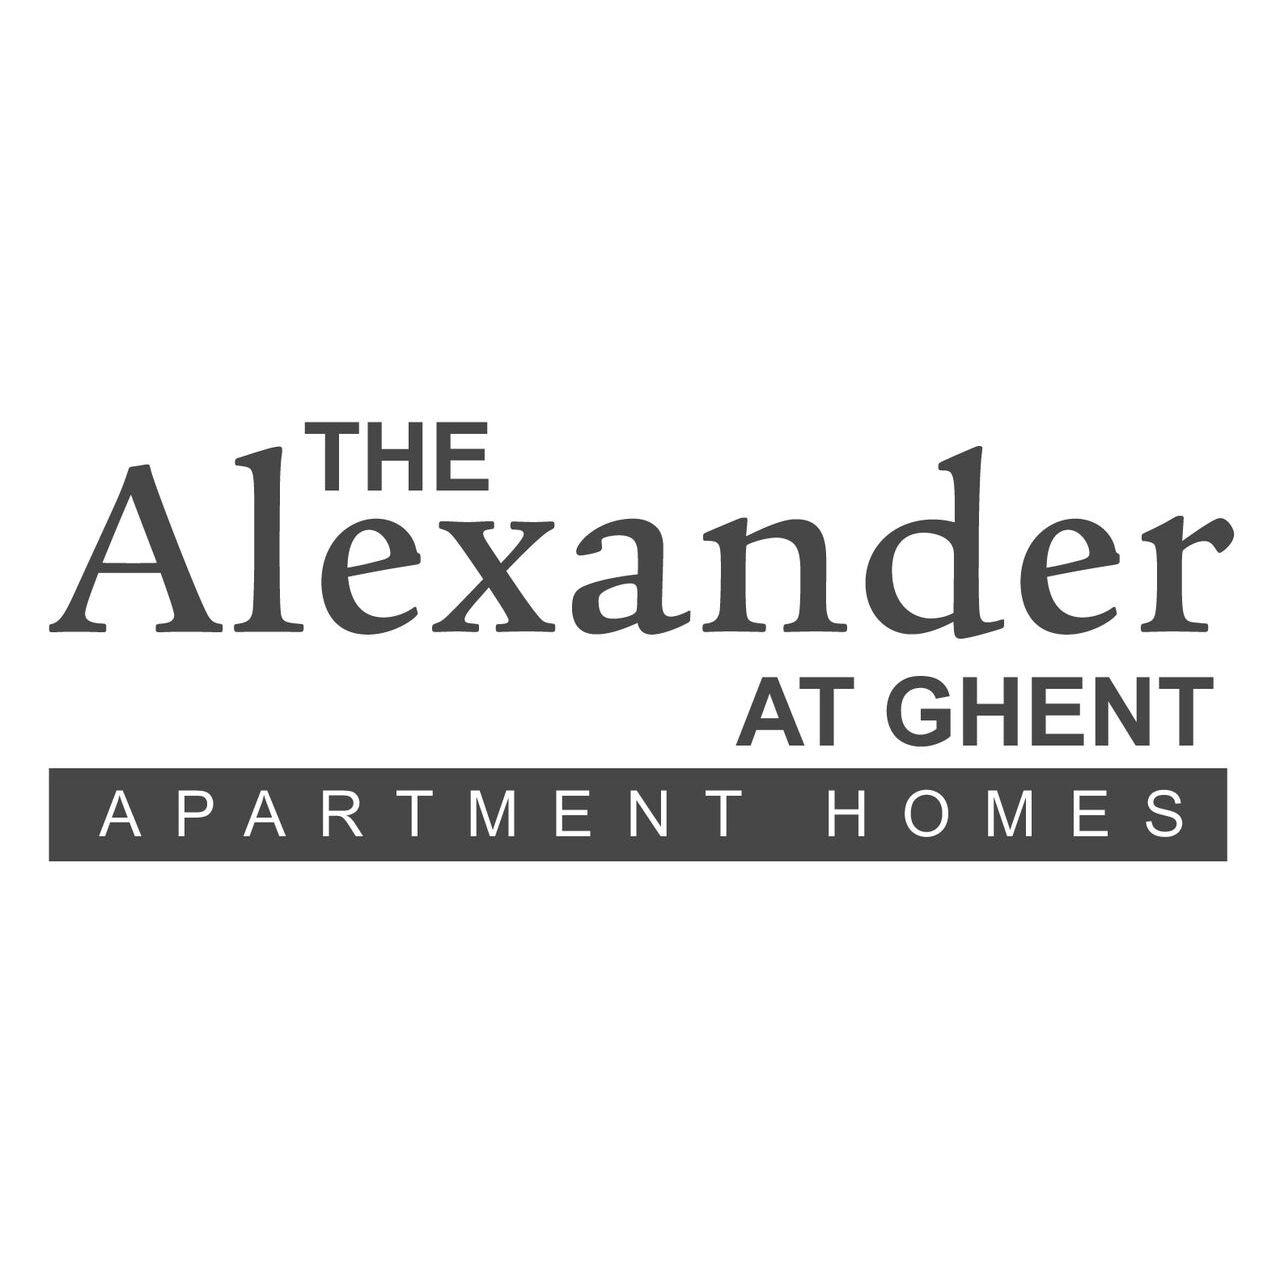 The Alexander at Ghent Apartment Homes